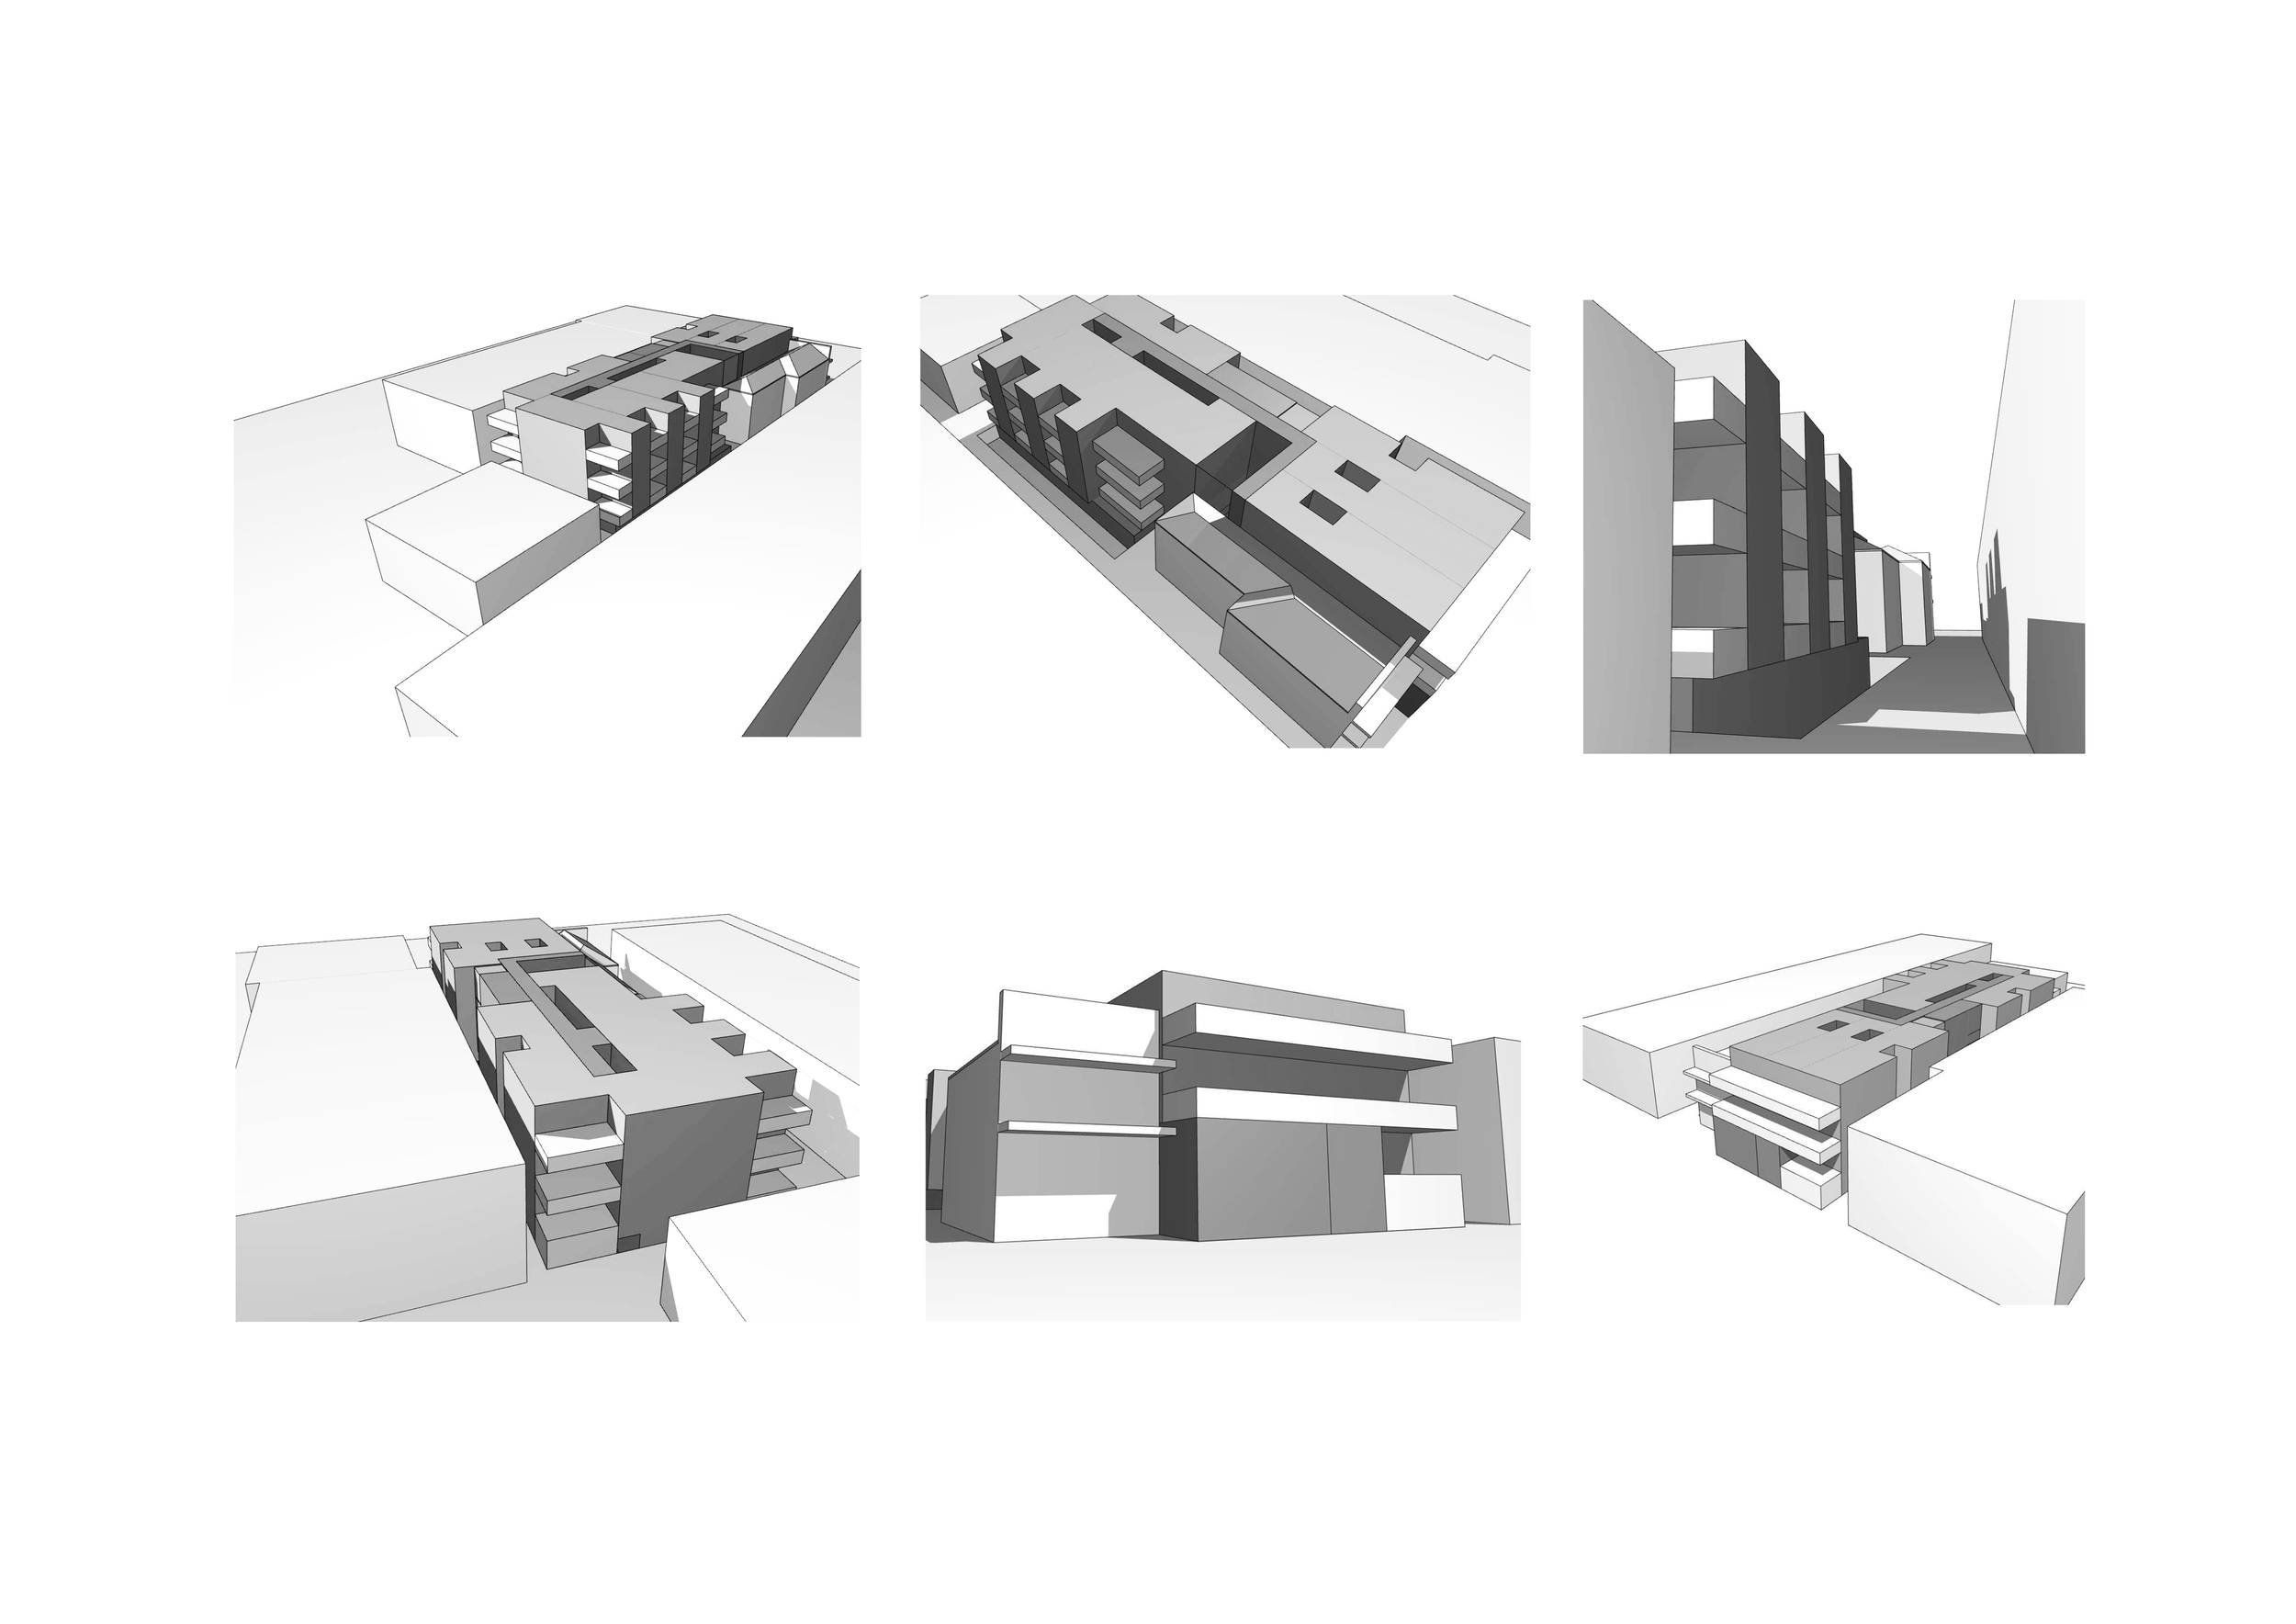 Feasibility Case study by Chamberlain Architects